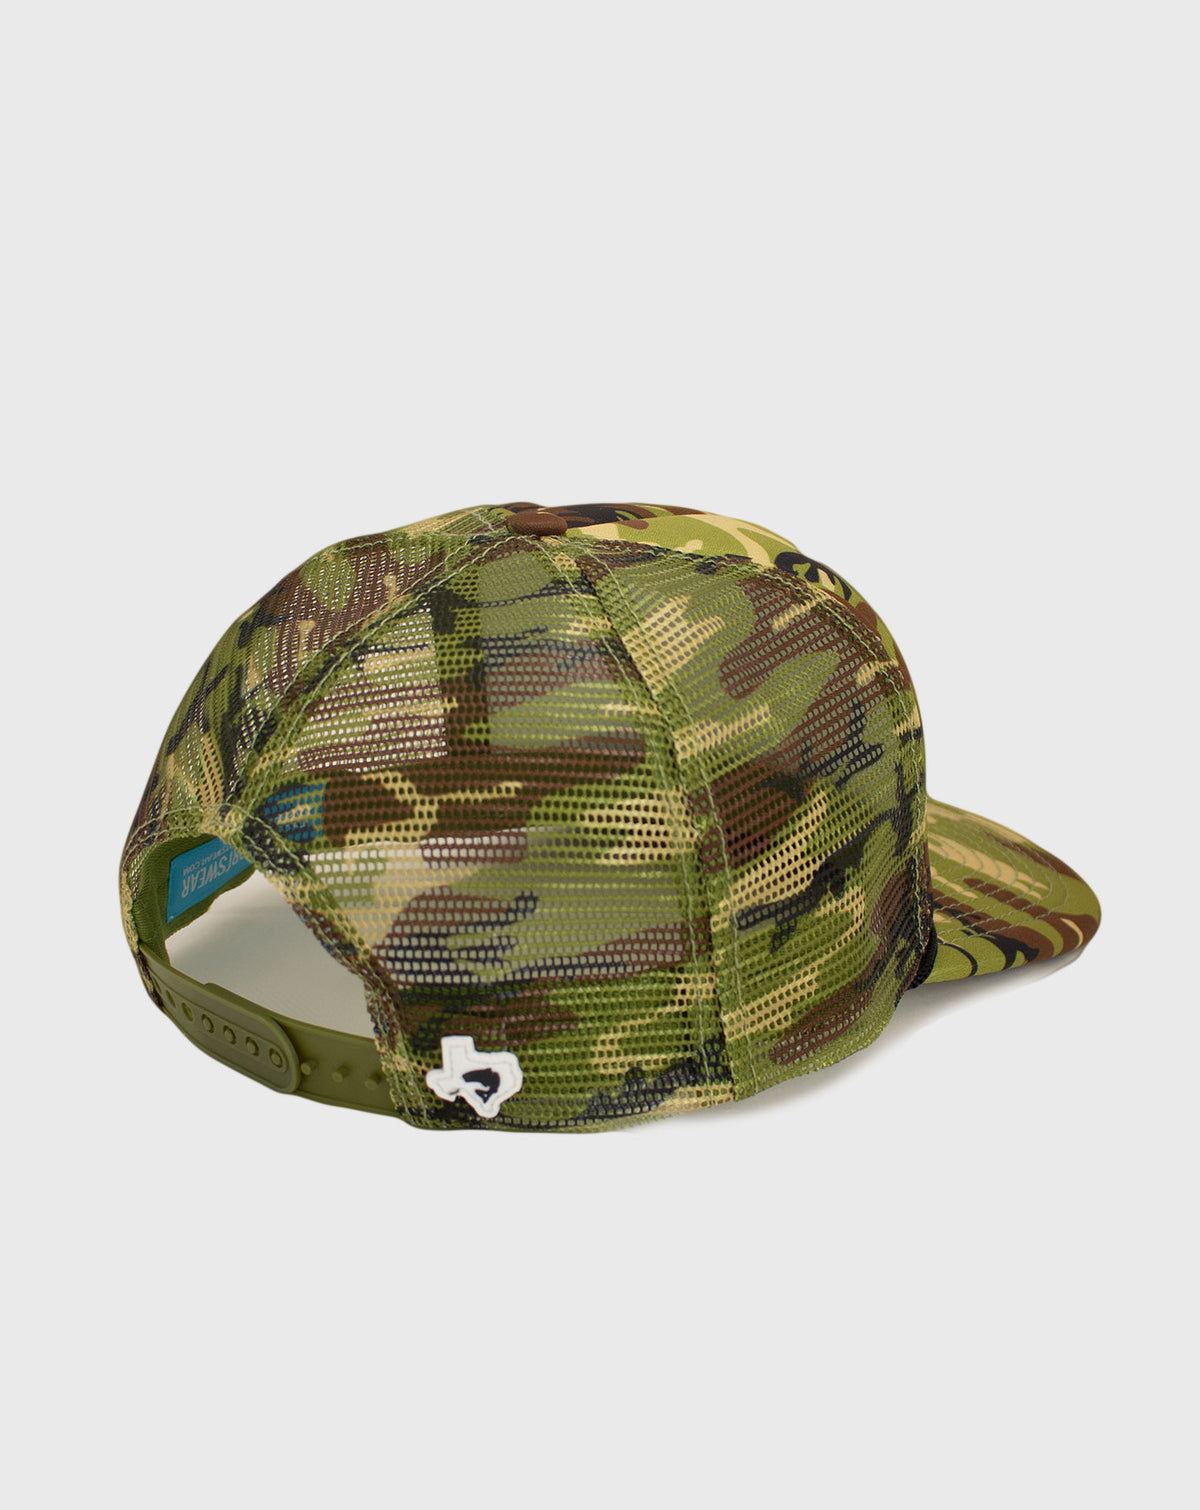 Camo Dude Trucker Fishing Cap